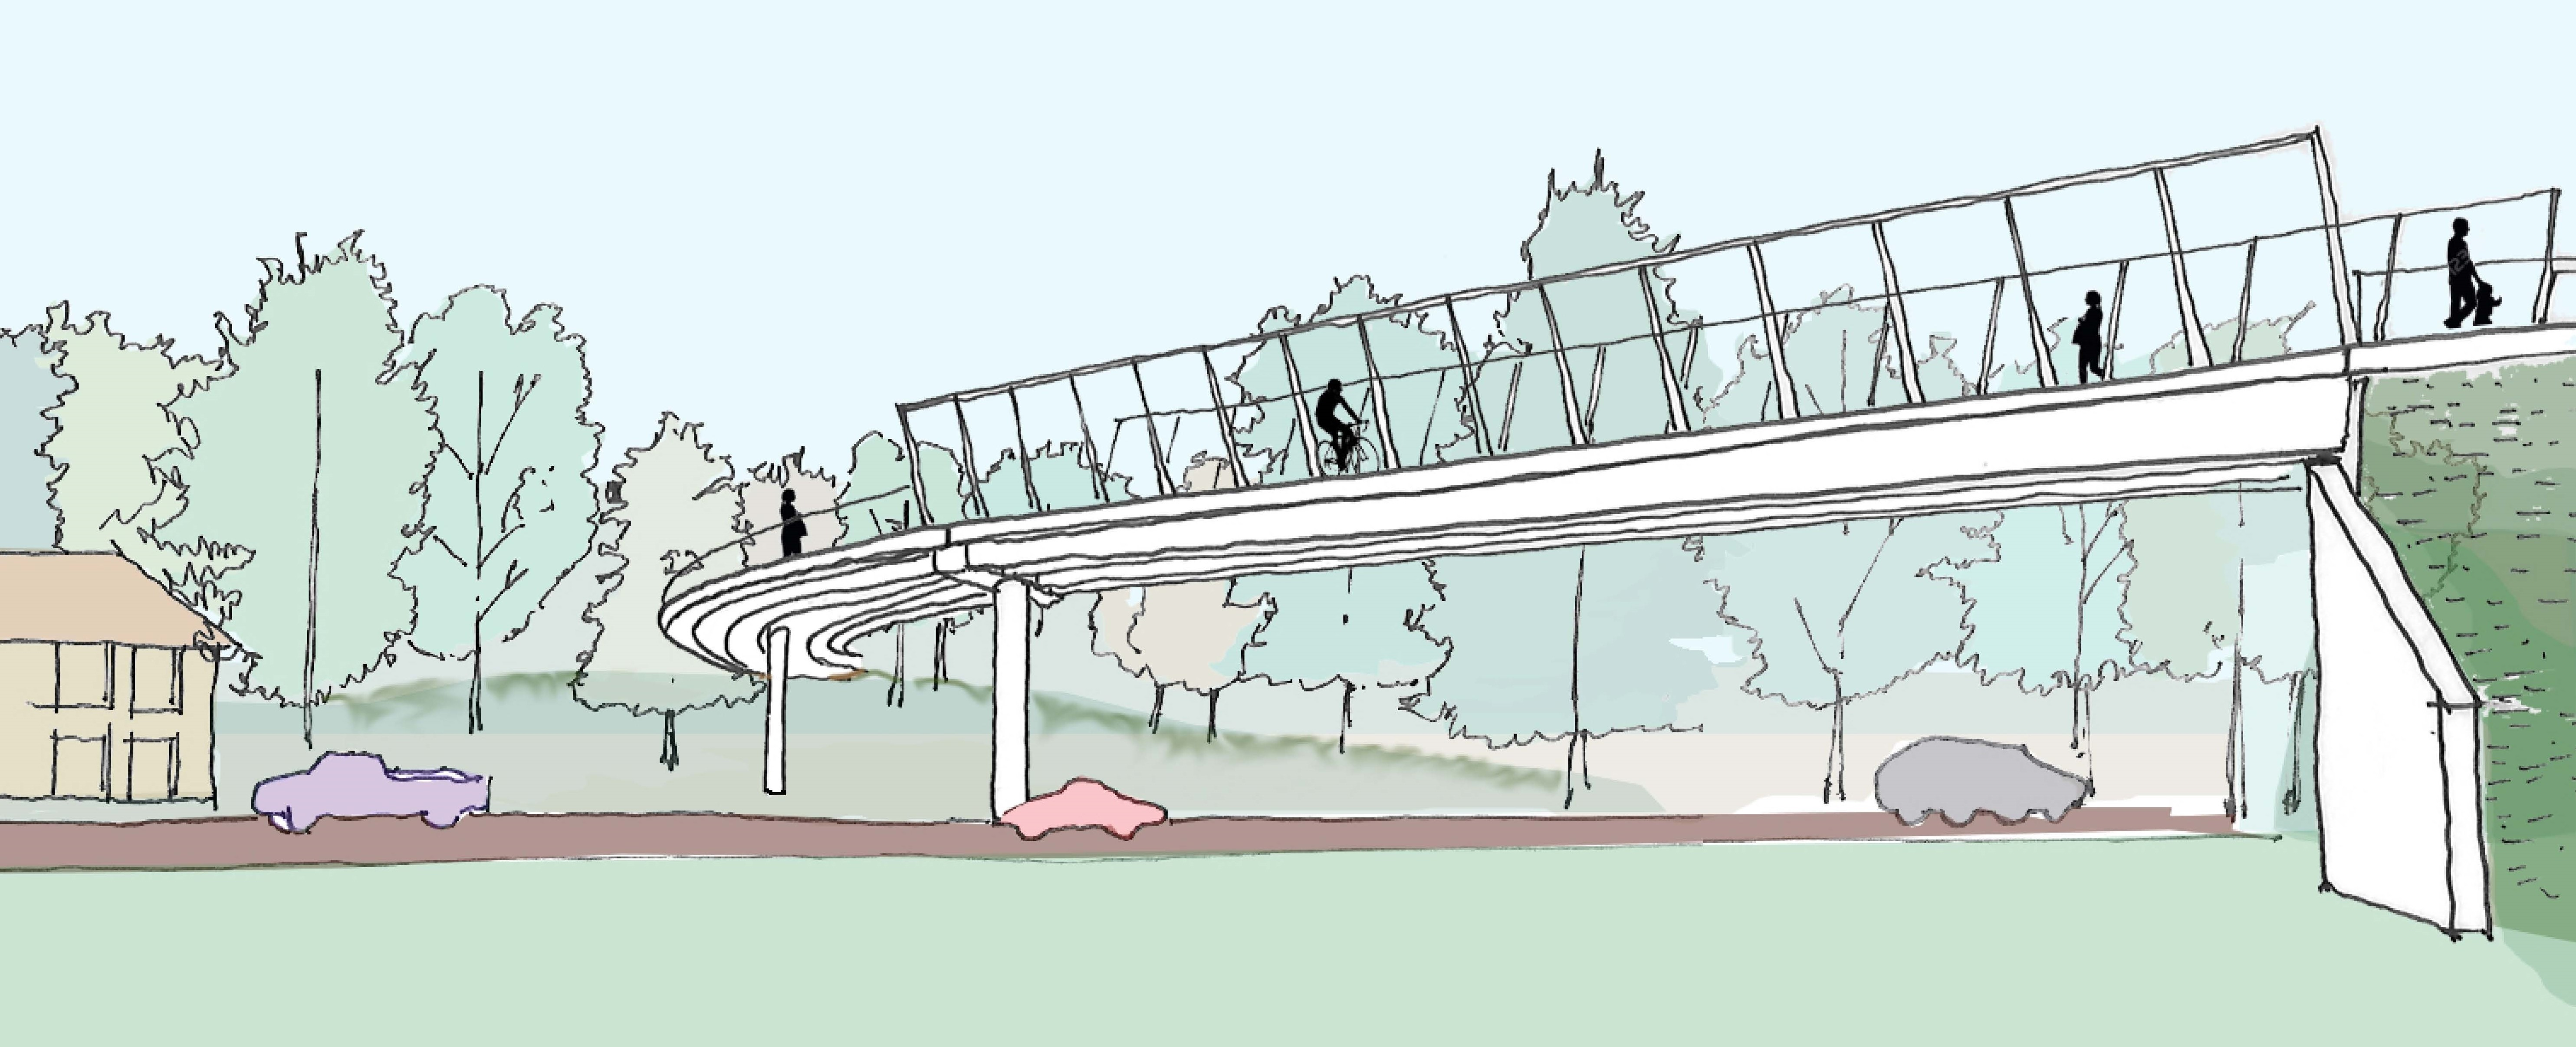 Proposed bridge rendering